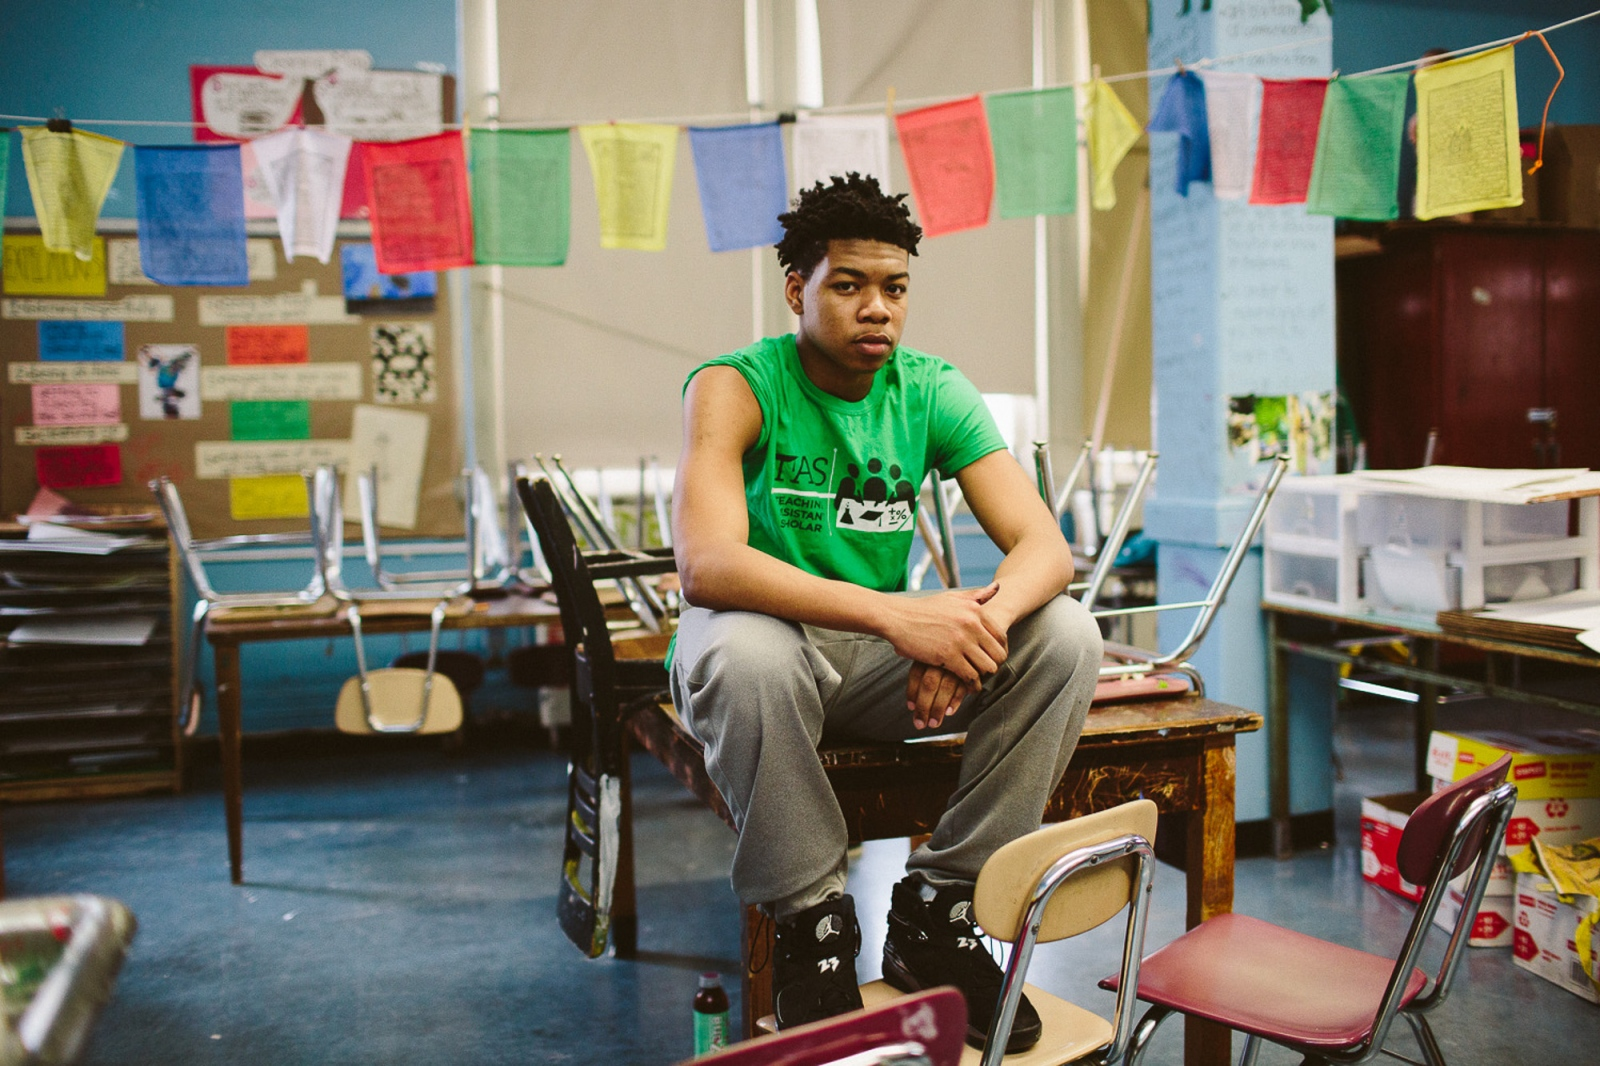 Jamal, 16, inside the art room at his school in Park Slope, Brooklyn on February 7, 2016. Jamal and his classmates are painting a mural with a message to promote school integration and scanner free schools.